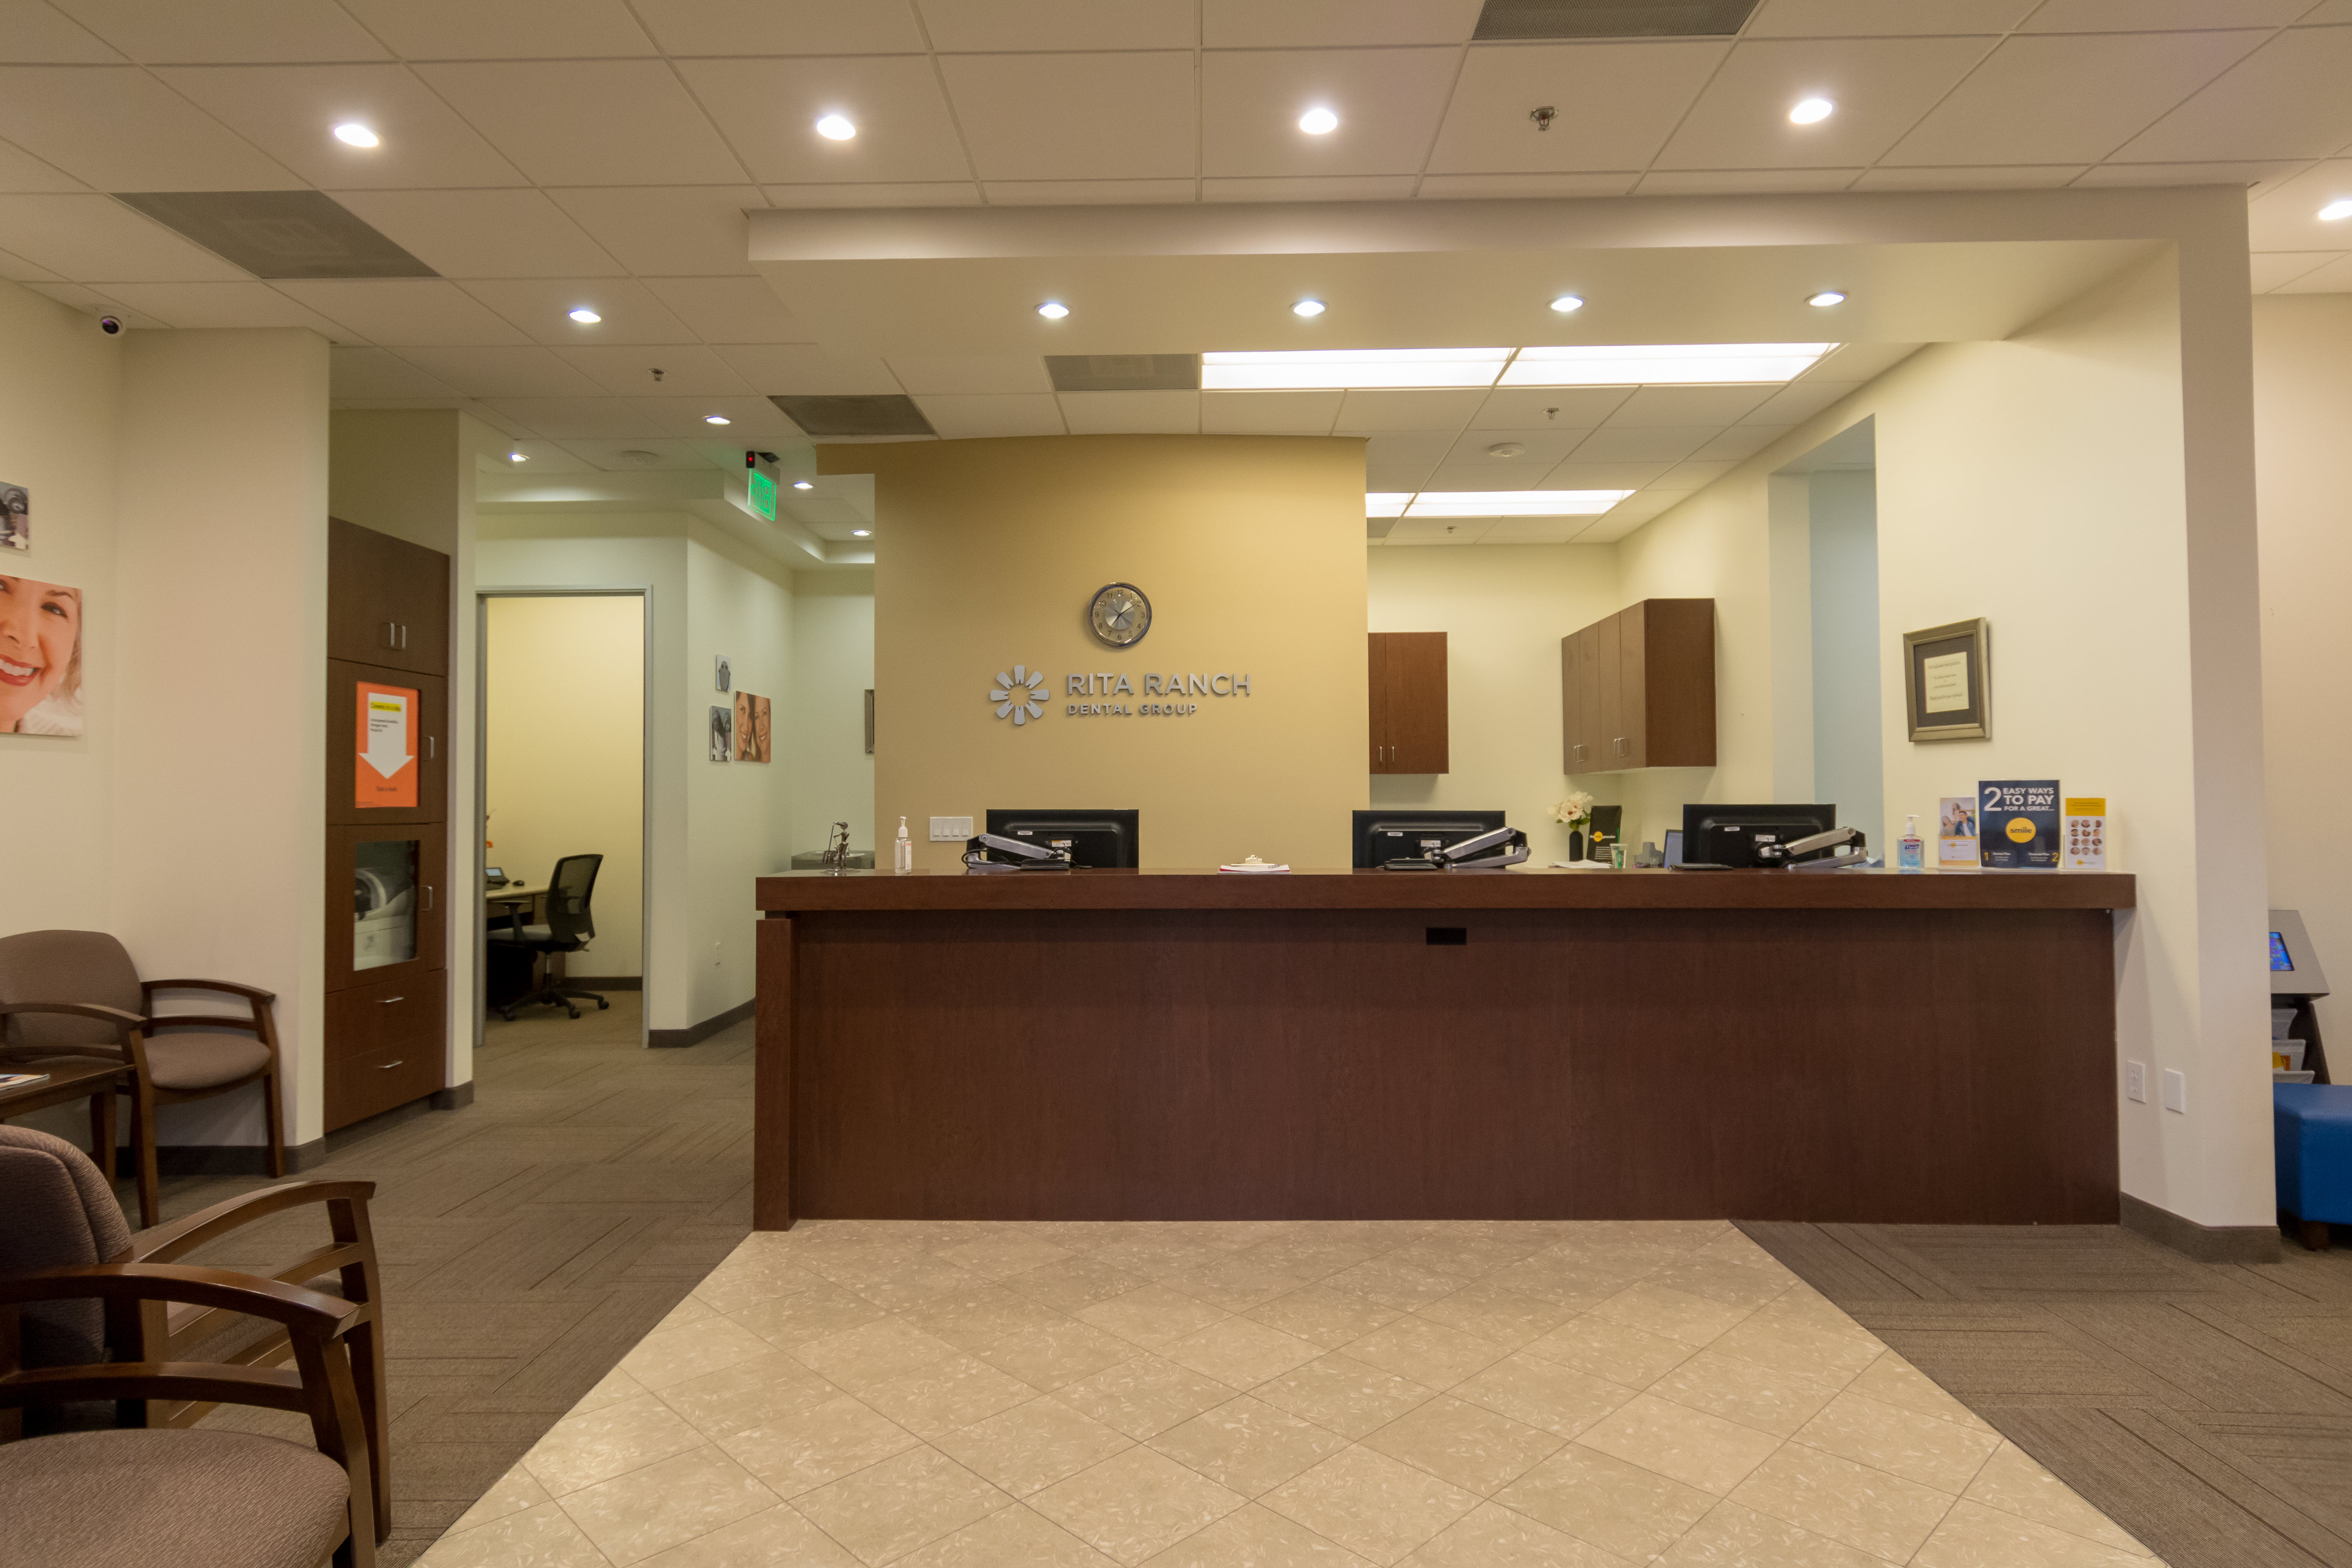 Rita Ranch Dental Group and Orthodontics image 5